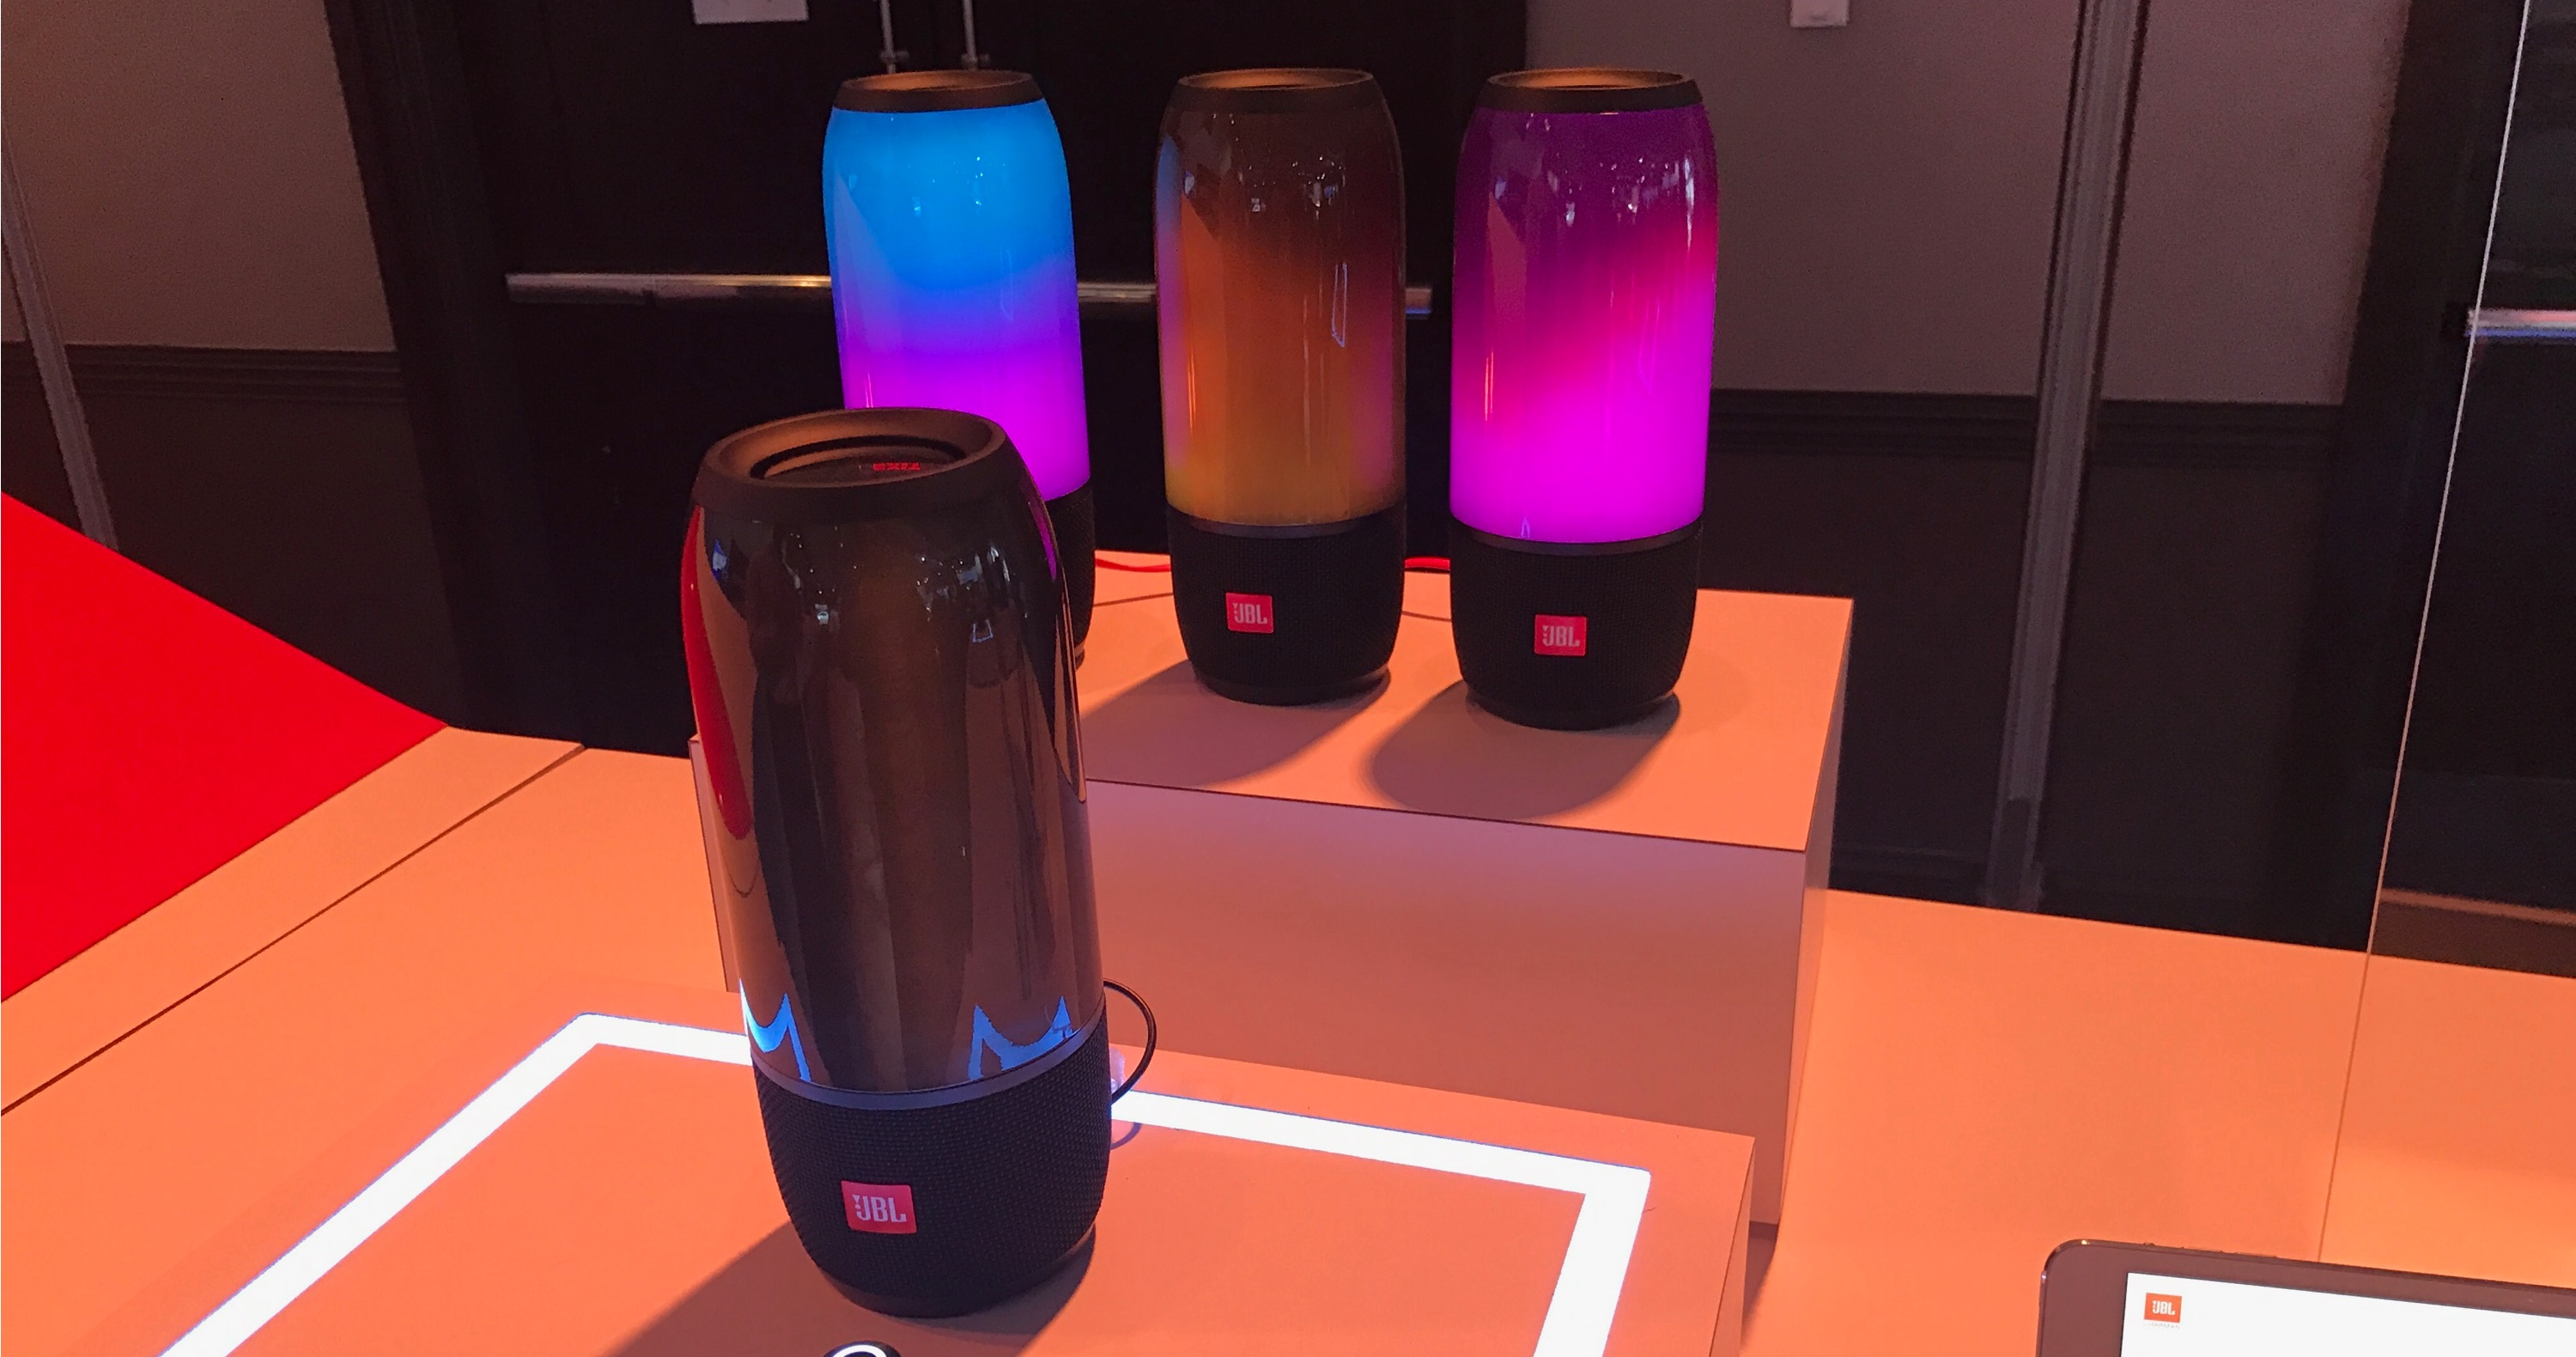 Jbl pulse 3 lava lamp effects and full portable sound for Housse jbl pulse 3